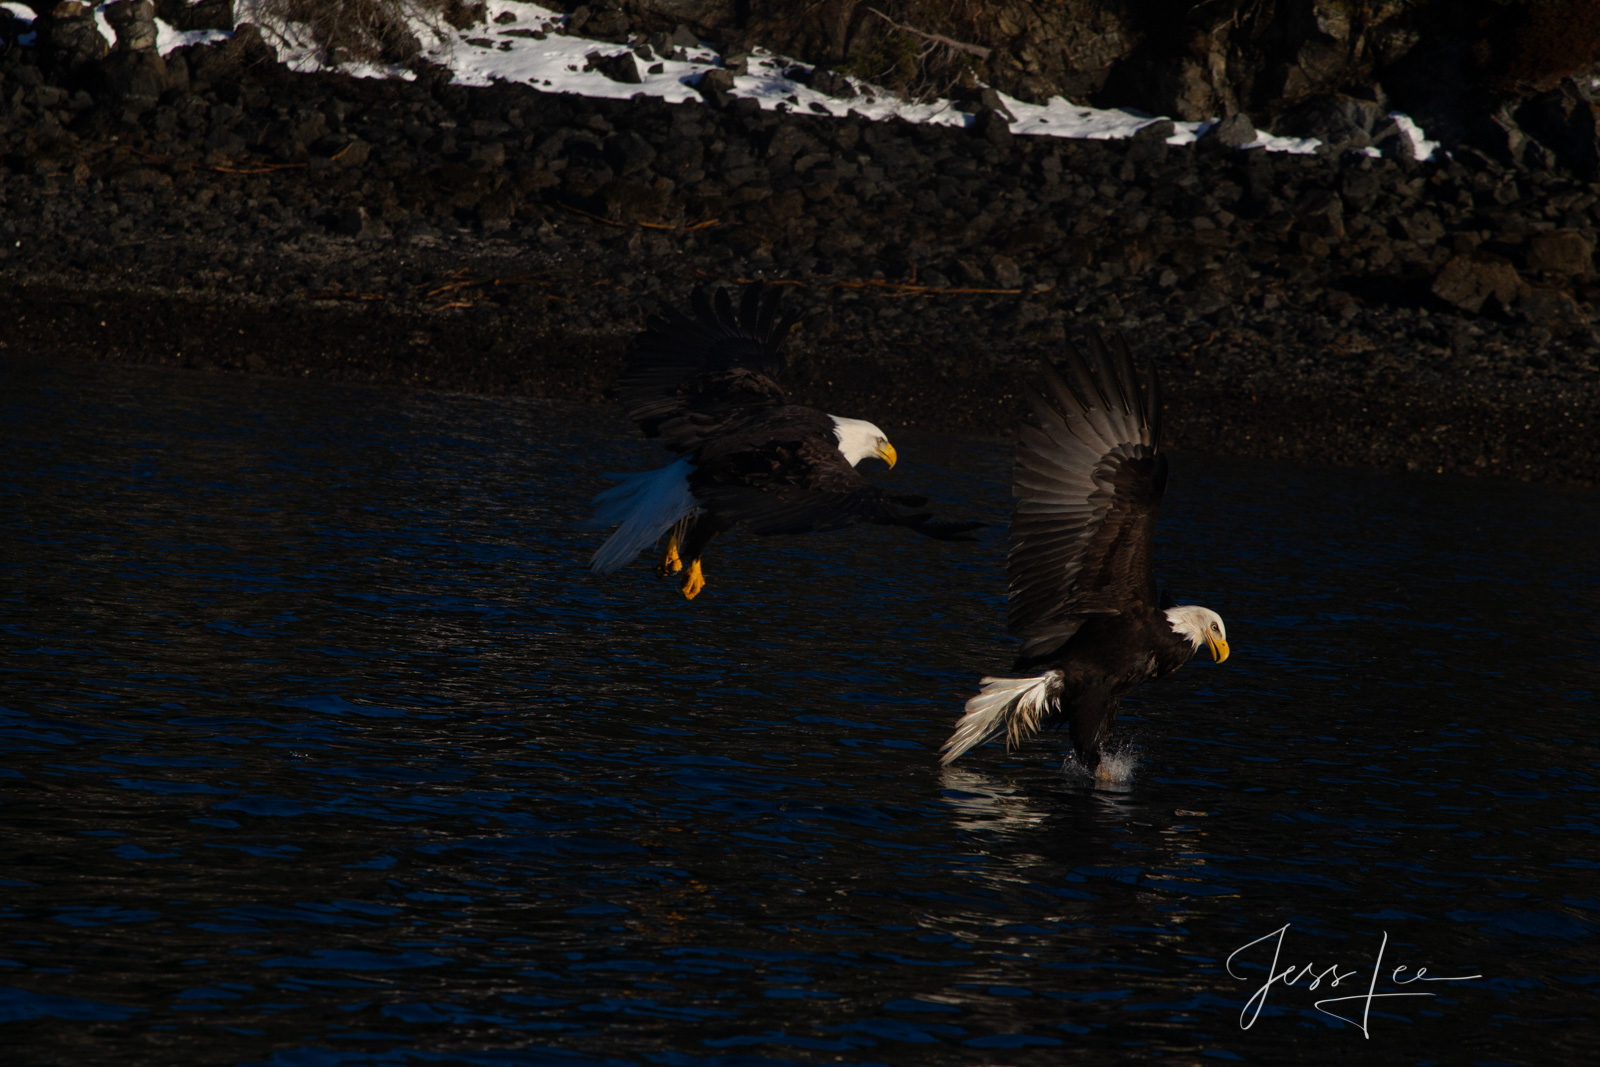 Bring home the power and beauty of the amazing fine art American Bald Eagle photograph The Rise #7 by Jess Lee from his Wildlife...